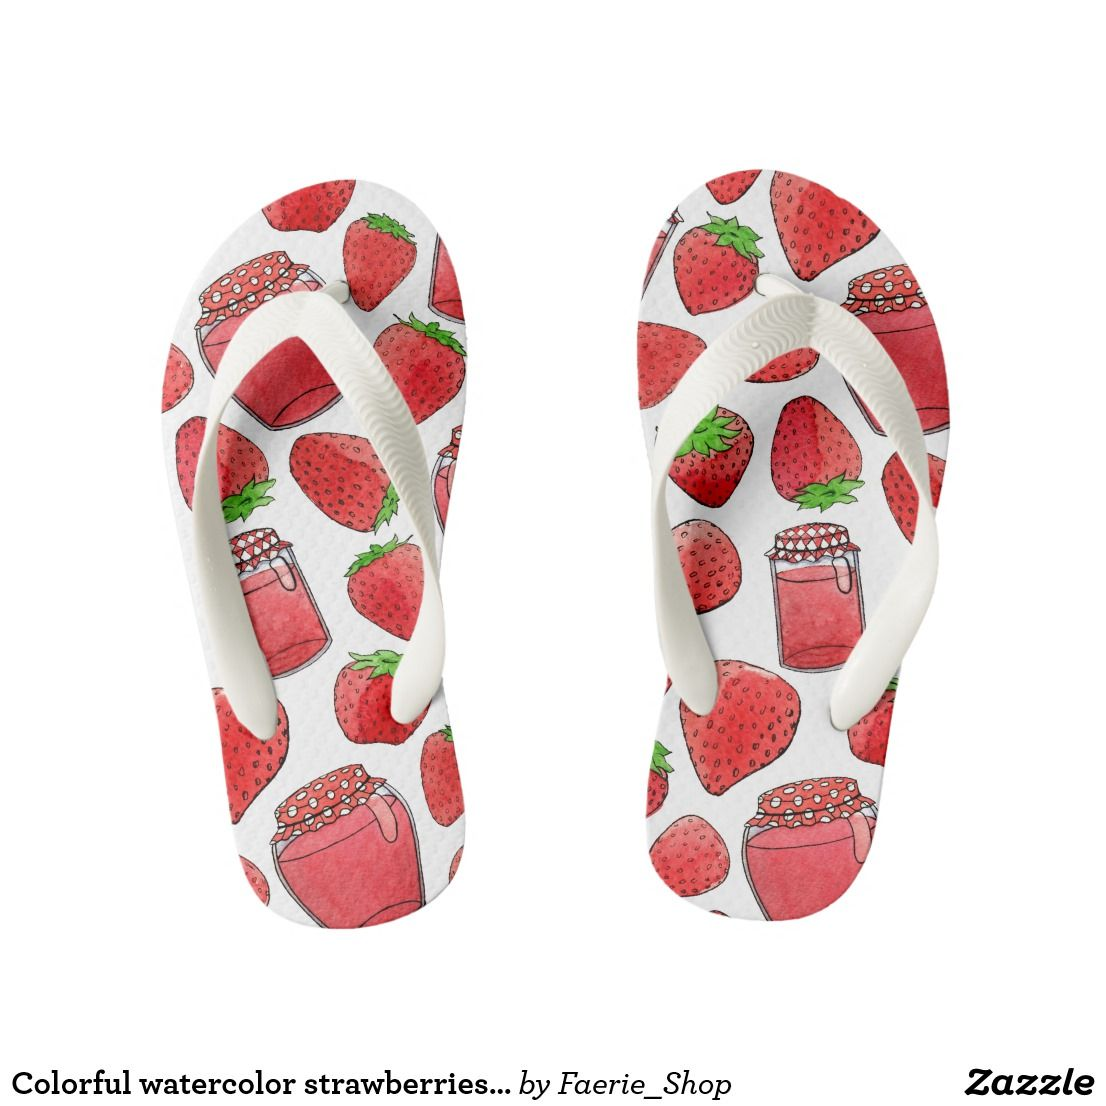 bd61ea7701525d Colorful watercolor strawberries   jams kid s flip flops  watercolor   watercolour  strawberry  jam  sketch  pattern  red  ink  accessories  zazzle  ...